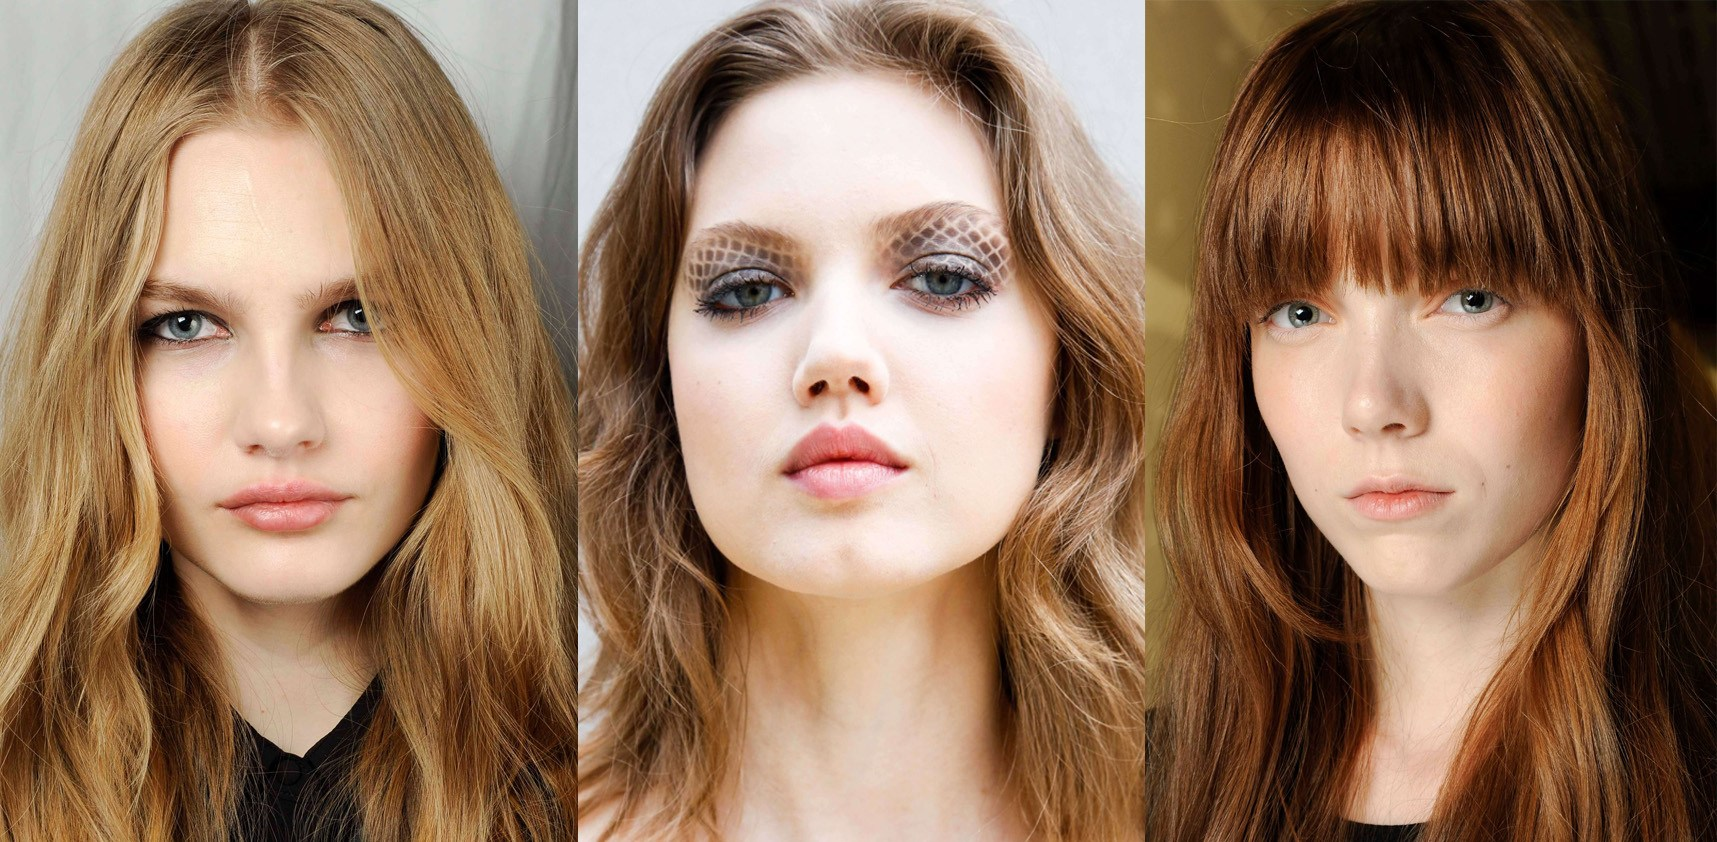 60 Cool Hairstyles To Flatter Round Faces Top Haircuts For Round Faces